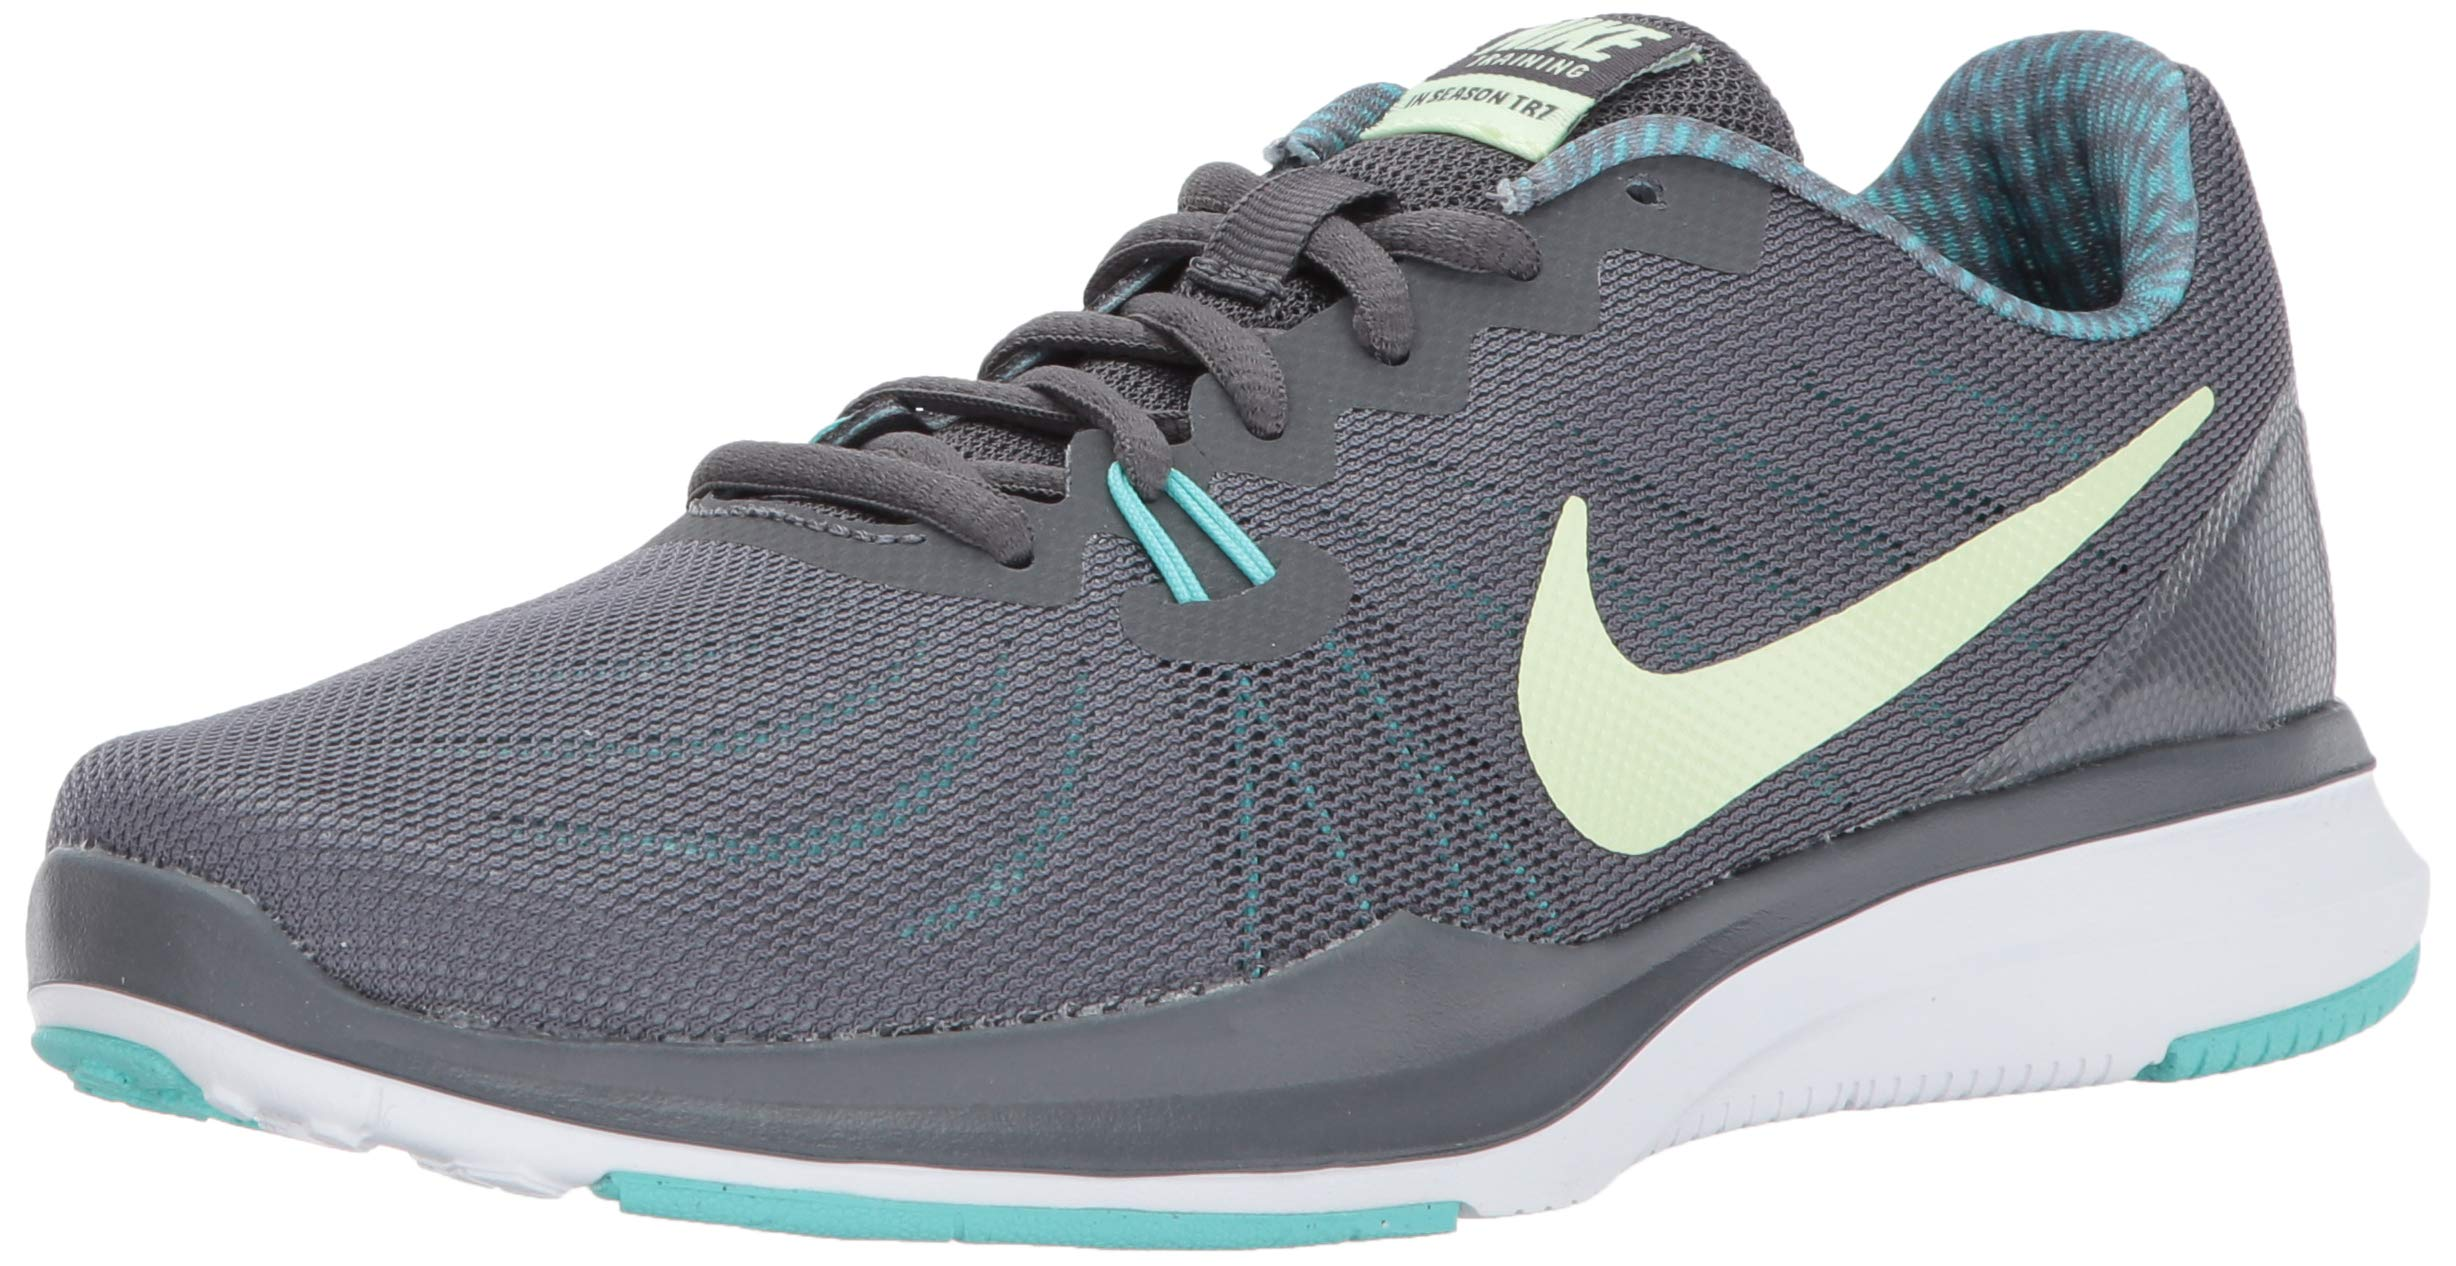 Nike Women's in-Season Trainer 7 Cross, Dark Grey/Barely Volt-Aurora Green, 11.5 Regular US by Nike